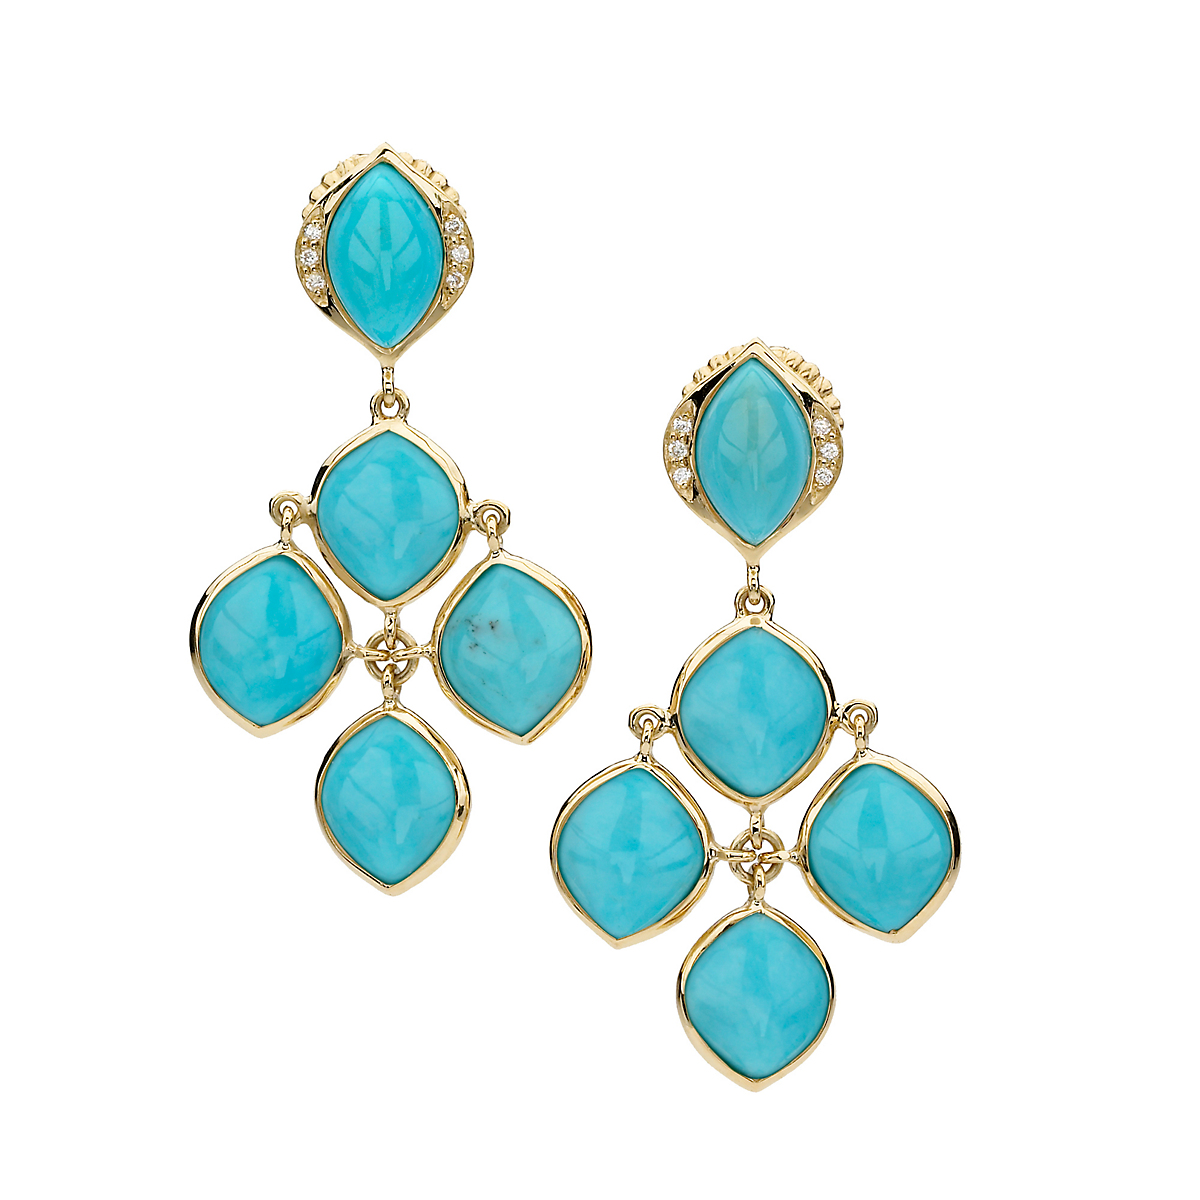 Elizabeth Showers Turquoise & Diamond Chandelier Earrings